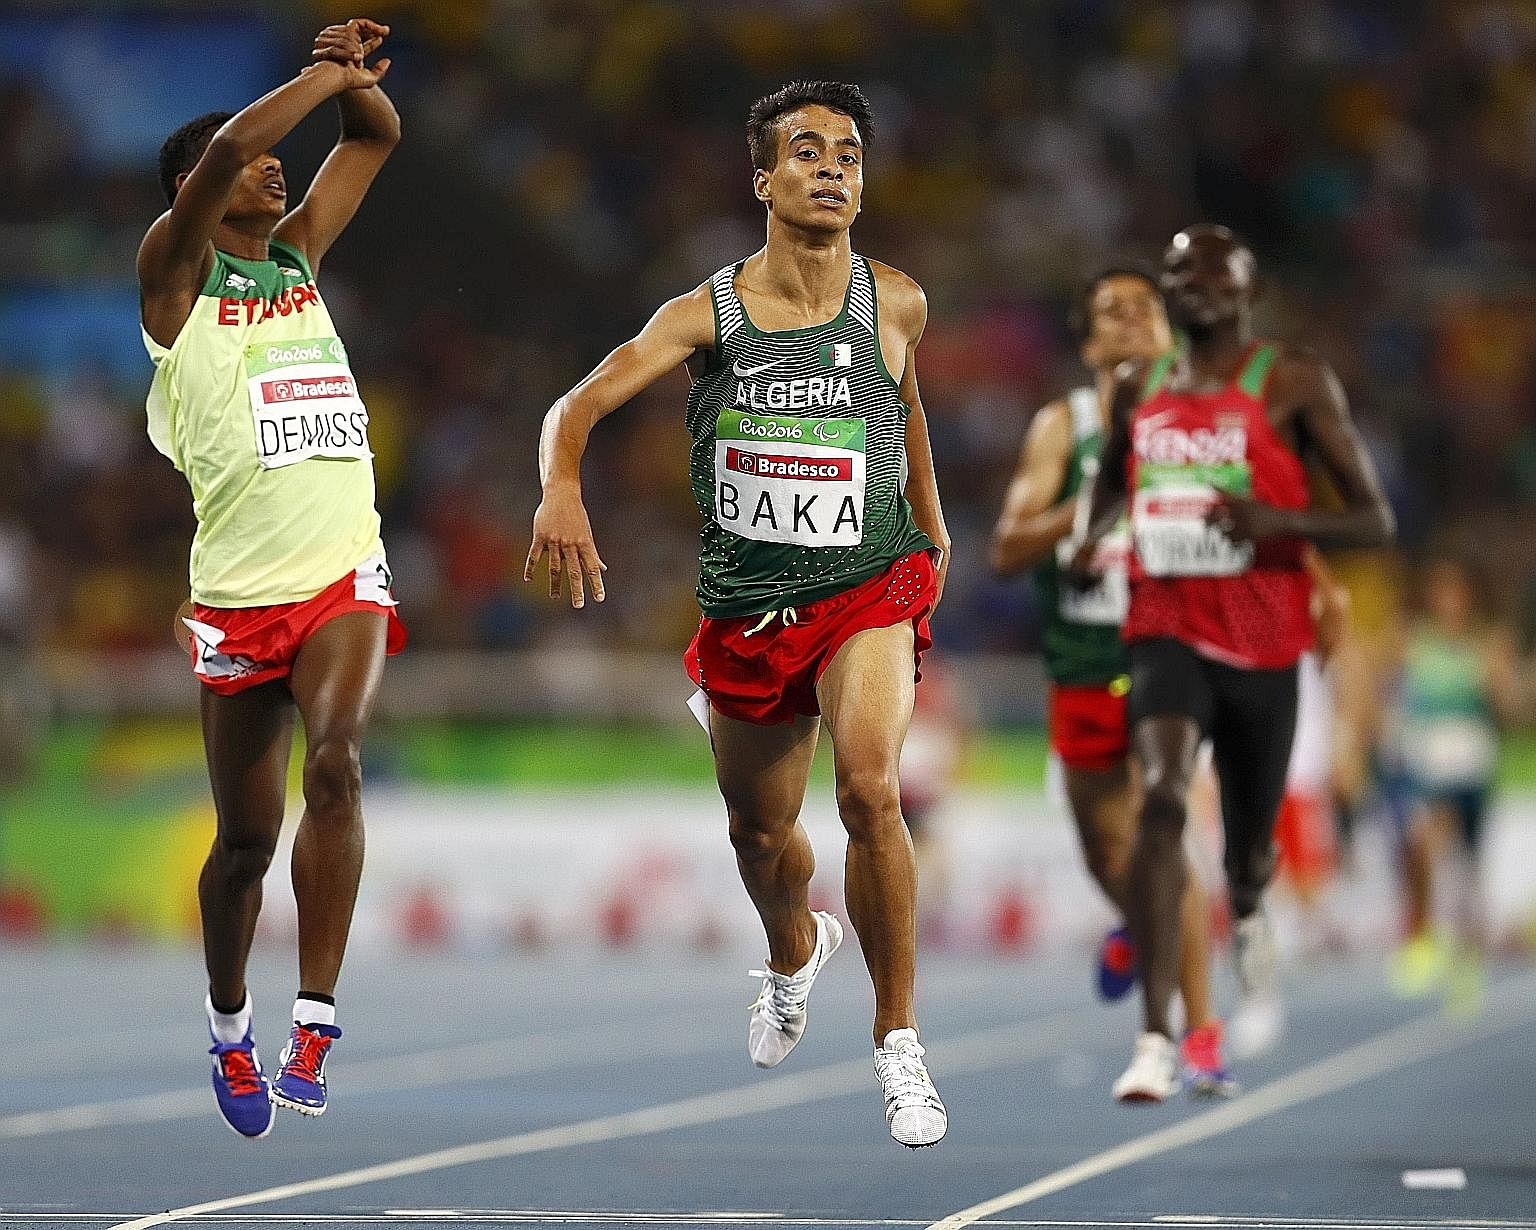 Abdellatif Baka of Algeria (right) won the T13 1,500m in a new Paralympic, Olympic and world record time in Rio de Janeiro, while Tamiru Demisse of Ethiopia took the silver.